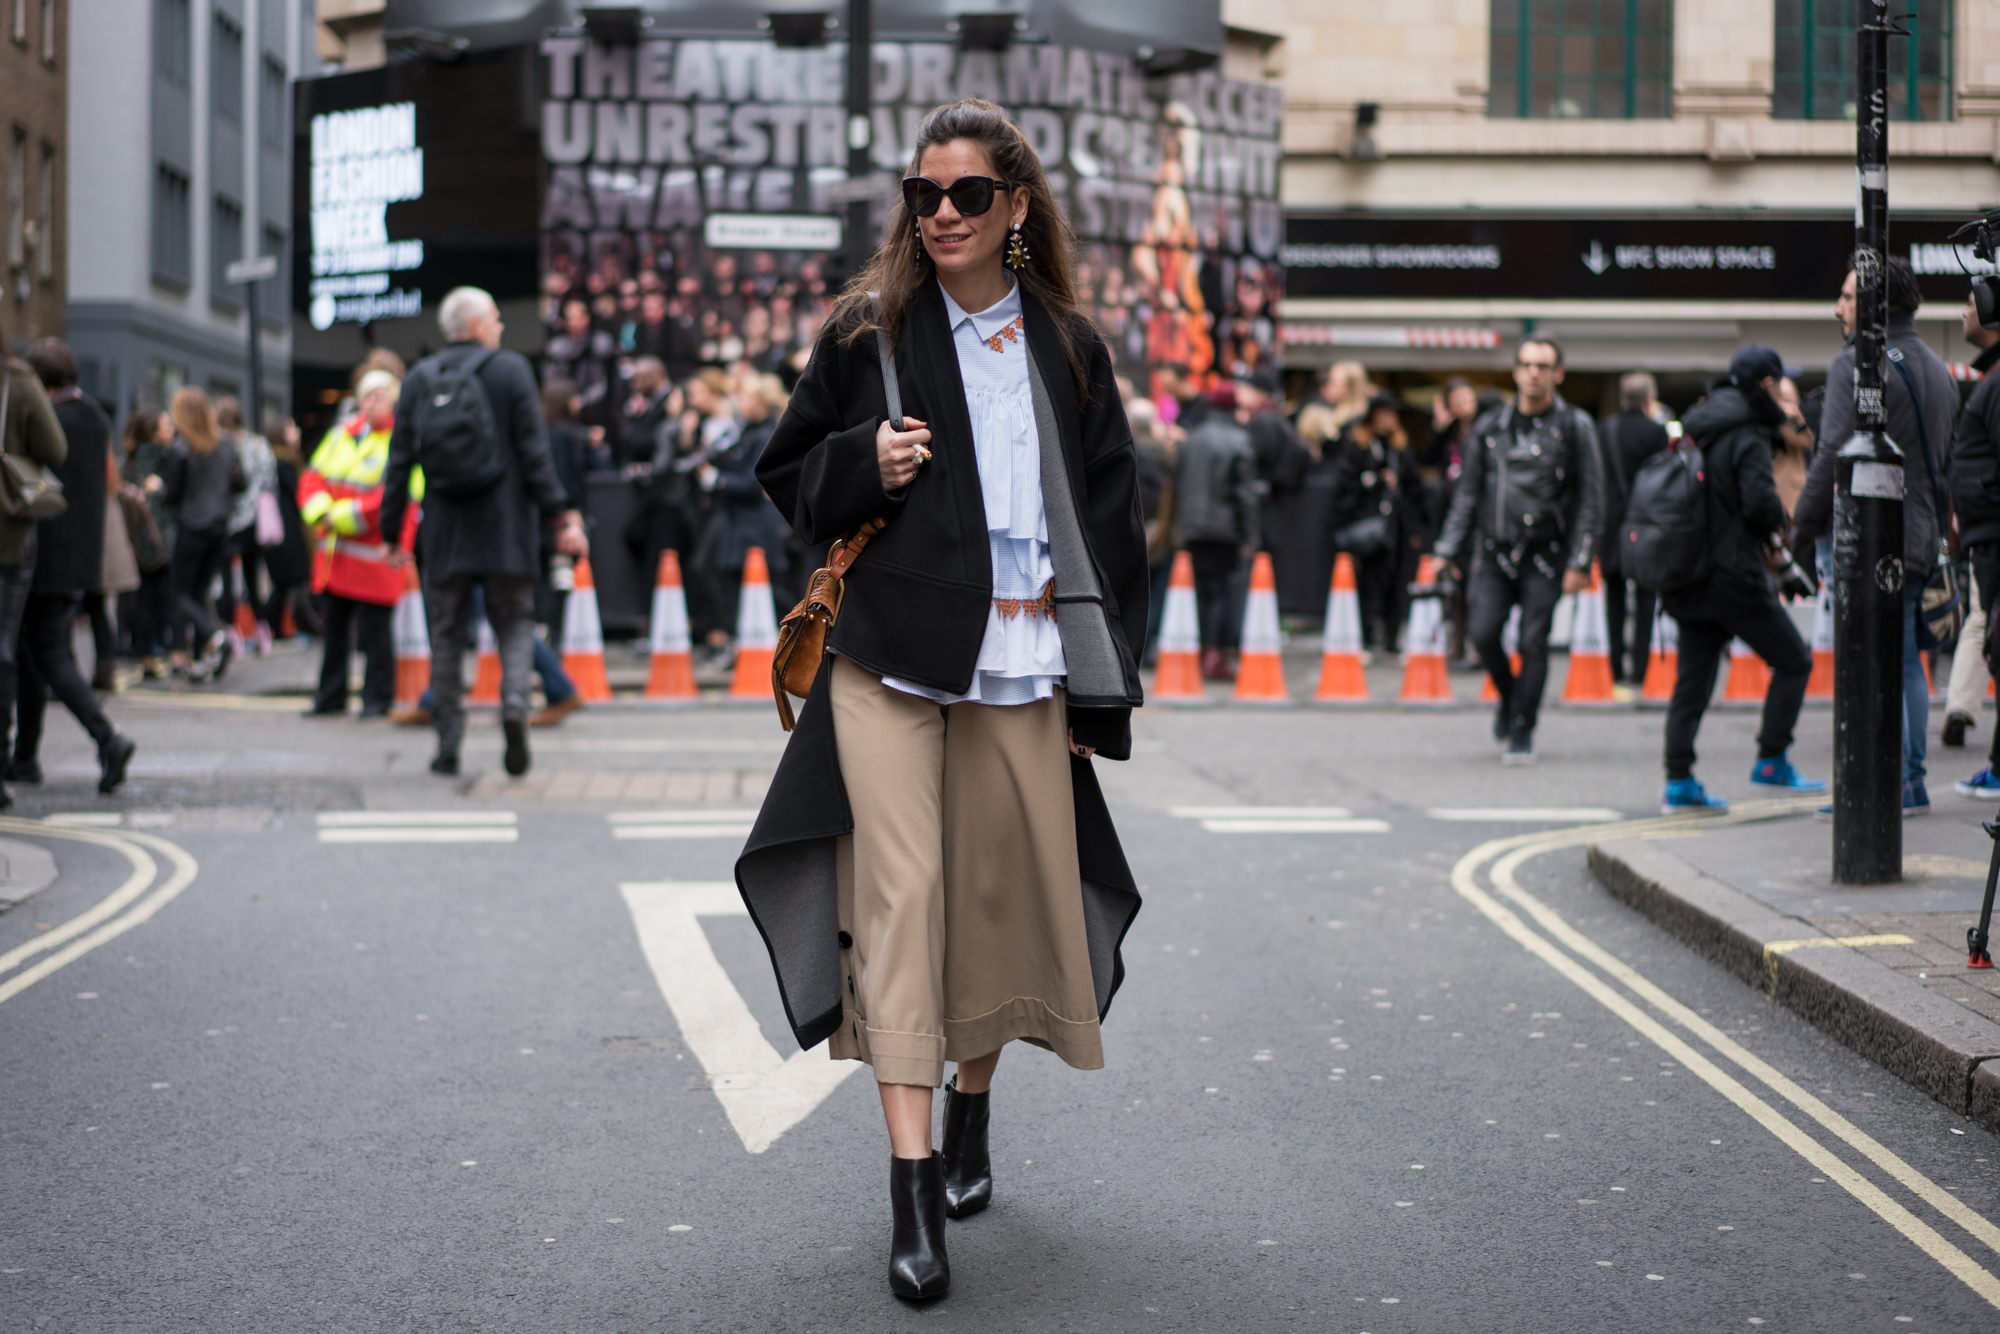 lfw, street style, london fashion week, sunglass hut, style, fashion, turkish style blogger, billur saatci, off ne giysem, mehtap elaidi, lug von siga, dolce gabbana, loeffler randall